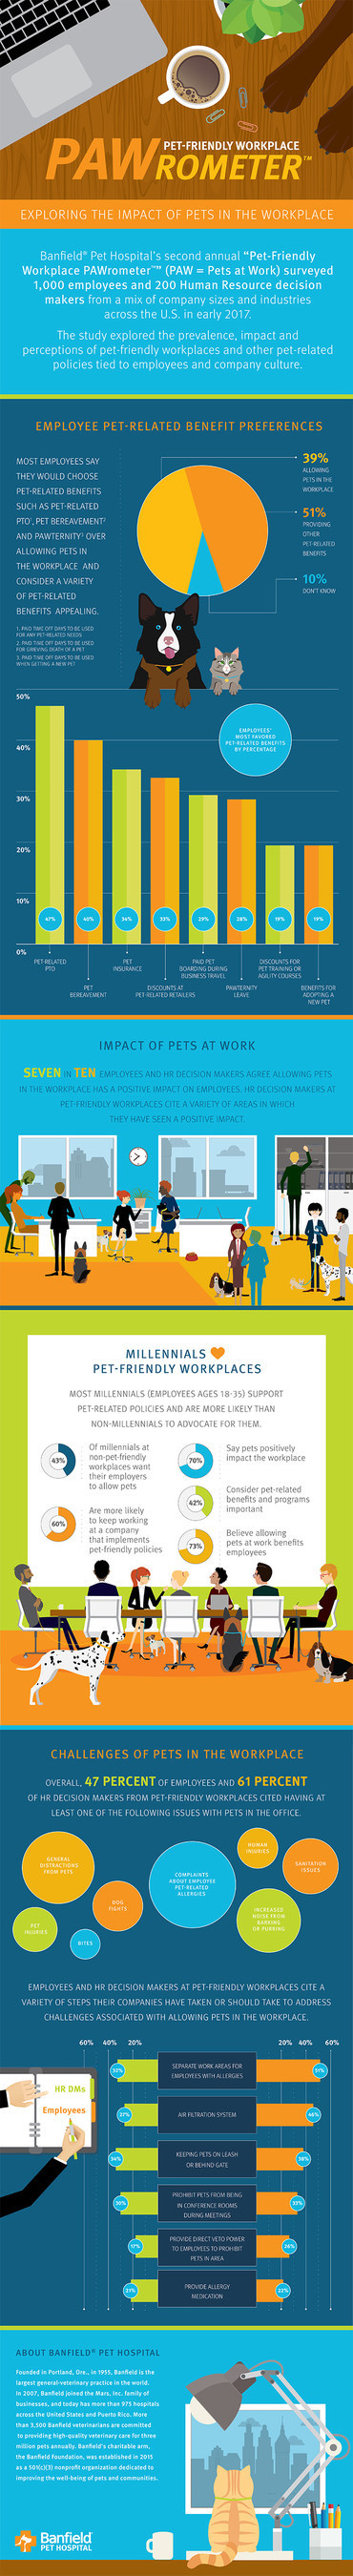 "Banfield® Pet Hospital's second annual ""Pet-Friendly Workplace PAWrometer™"" (PAW = Pets at Work) surveyed 1,000 employees and 200 Human Resource decision makers from a mix of company sizes and industries across the U.S. in early 2017. The study explored the prevalence, impact and perceptions of pet-friendly workplaces and other pet-related policies tied to employees and company culture."